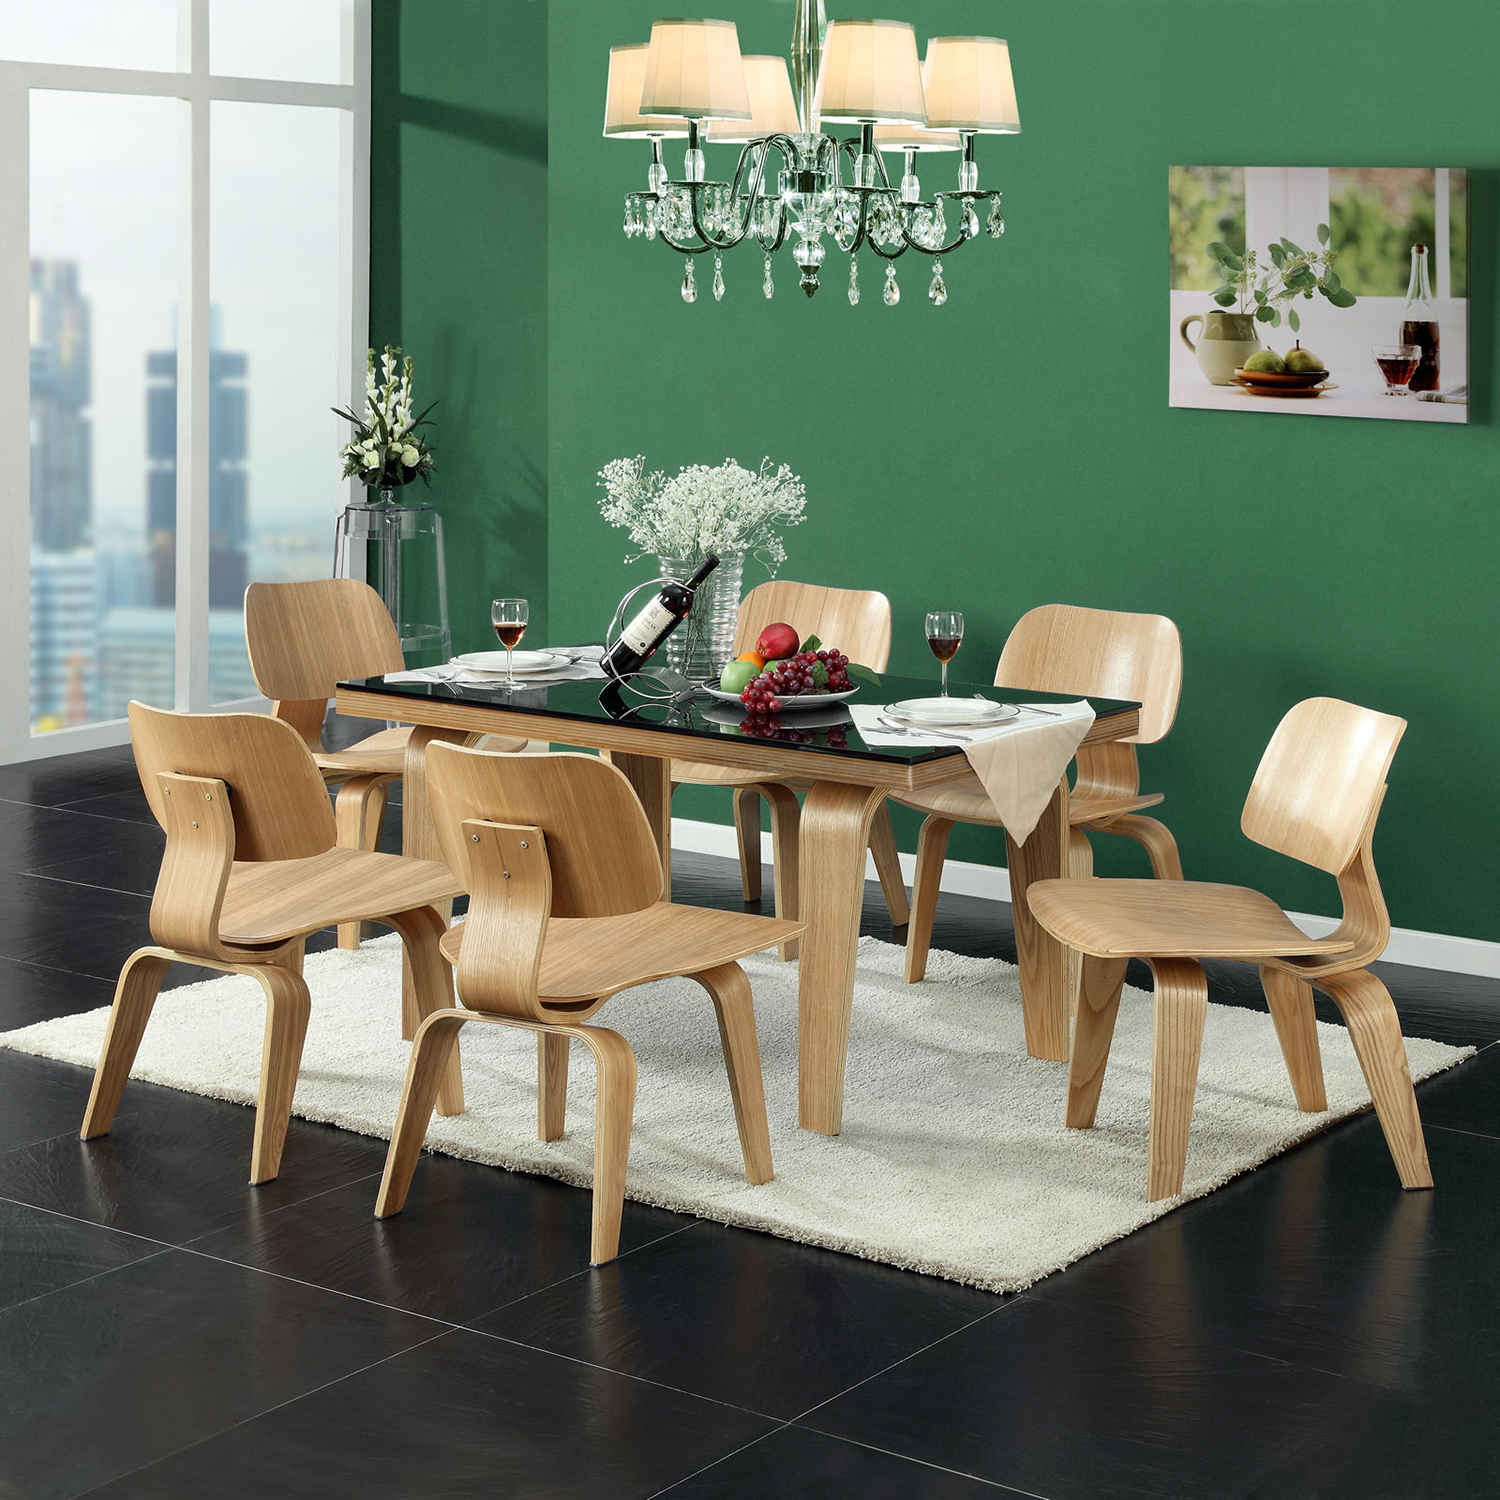 Fathom Wood Dining Chairs - Natural (Set of 2) - EEI-870-NAT